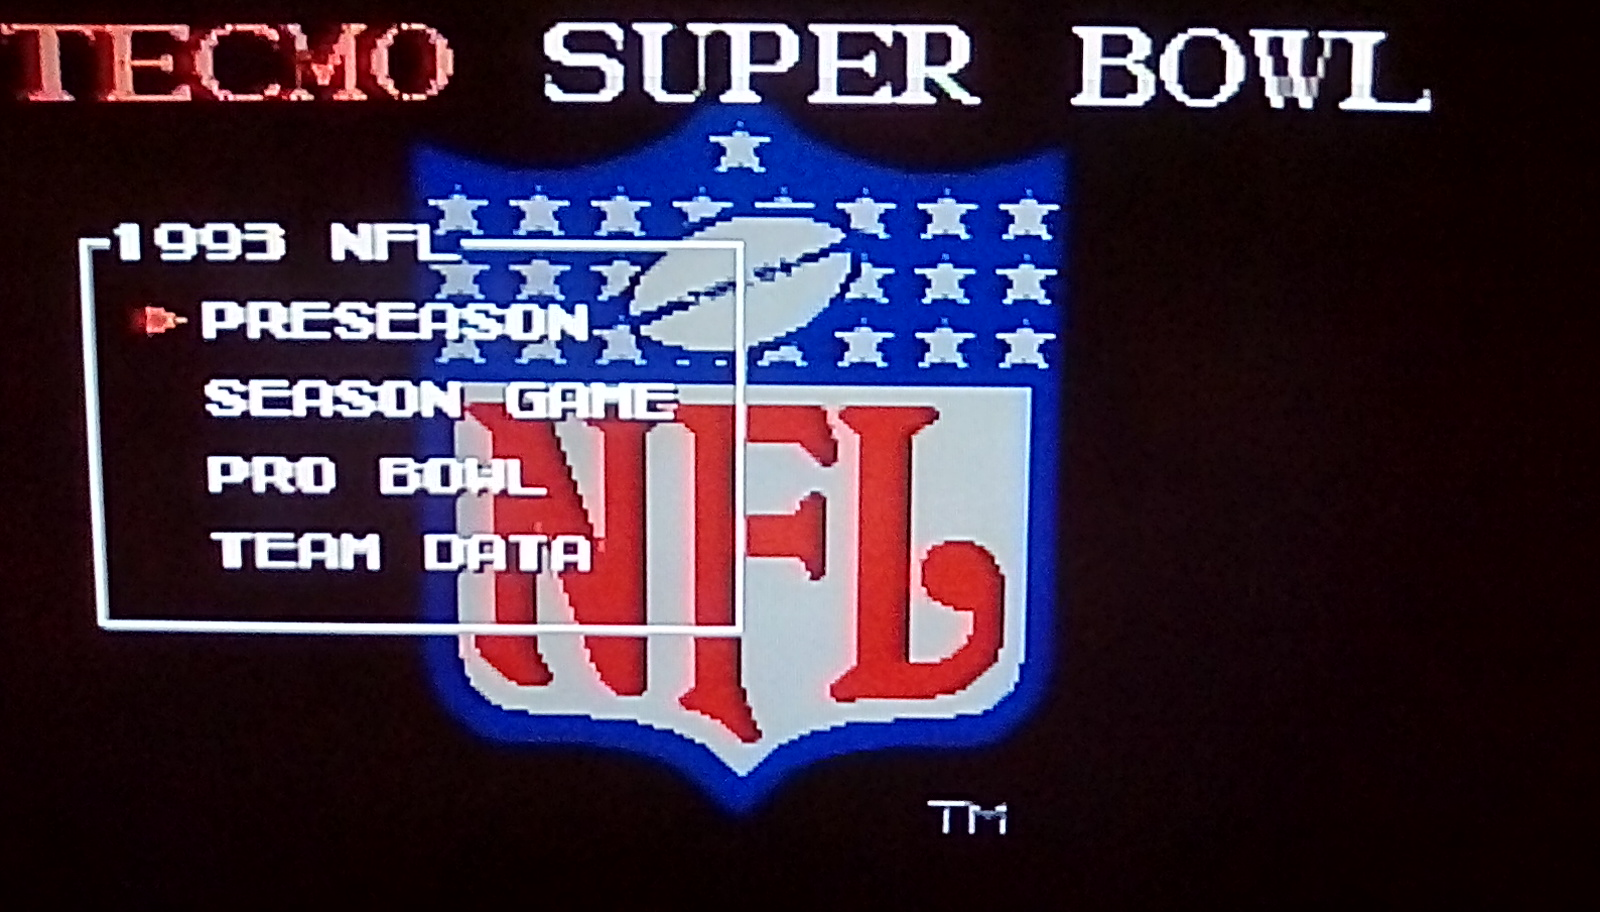 Tecmo Super Bowl [Most Rushing Attempts In A Preseason Game] 42 points